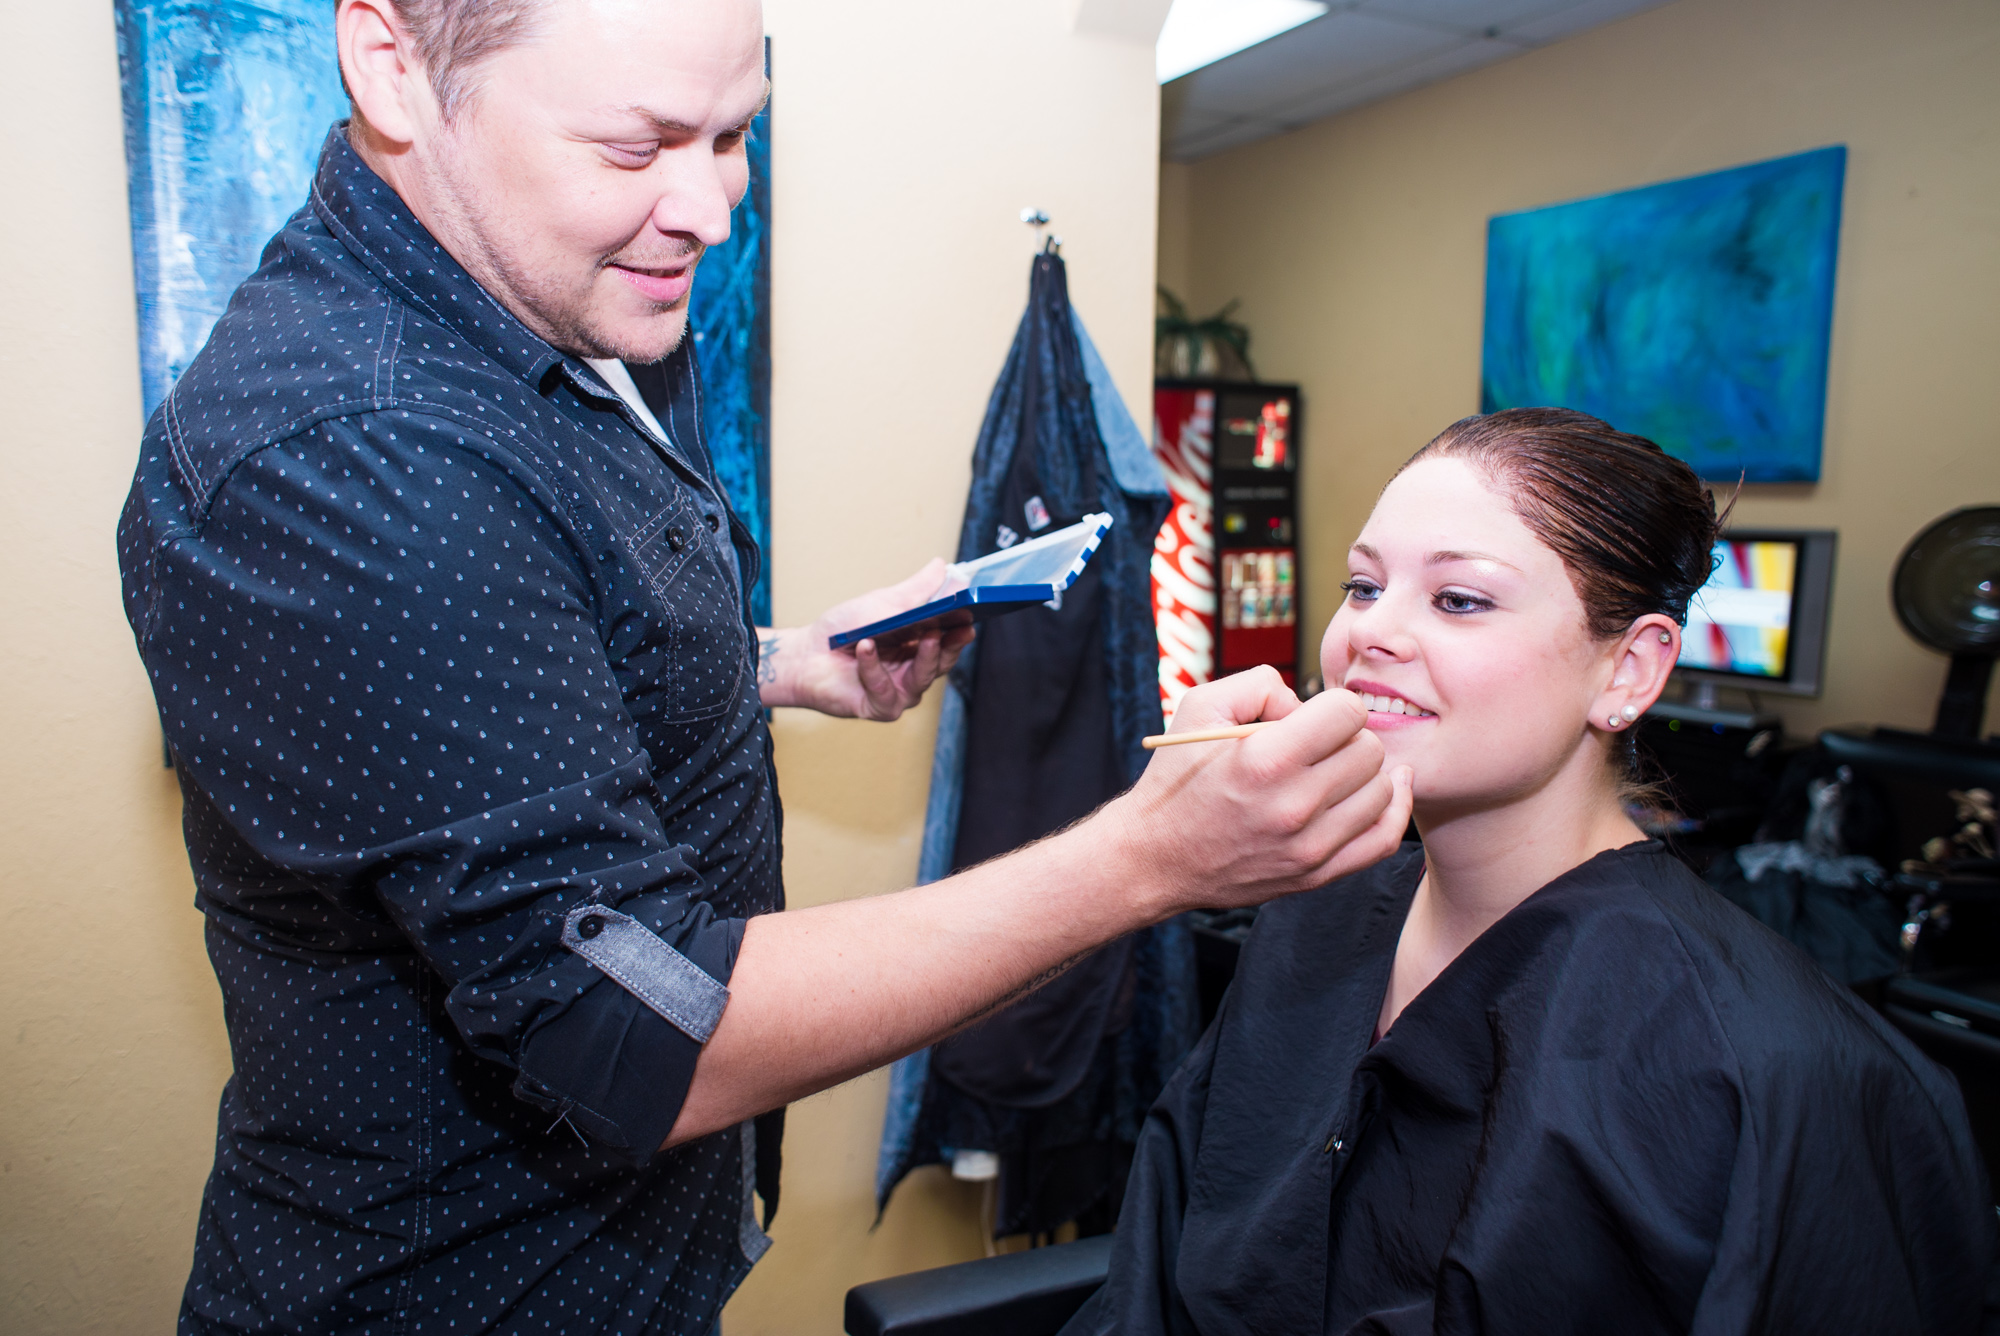 Make-up application for special occasions and weddings